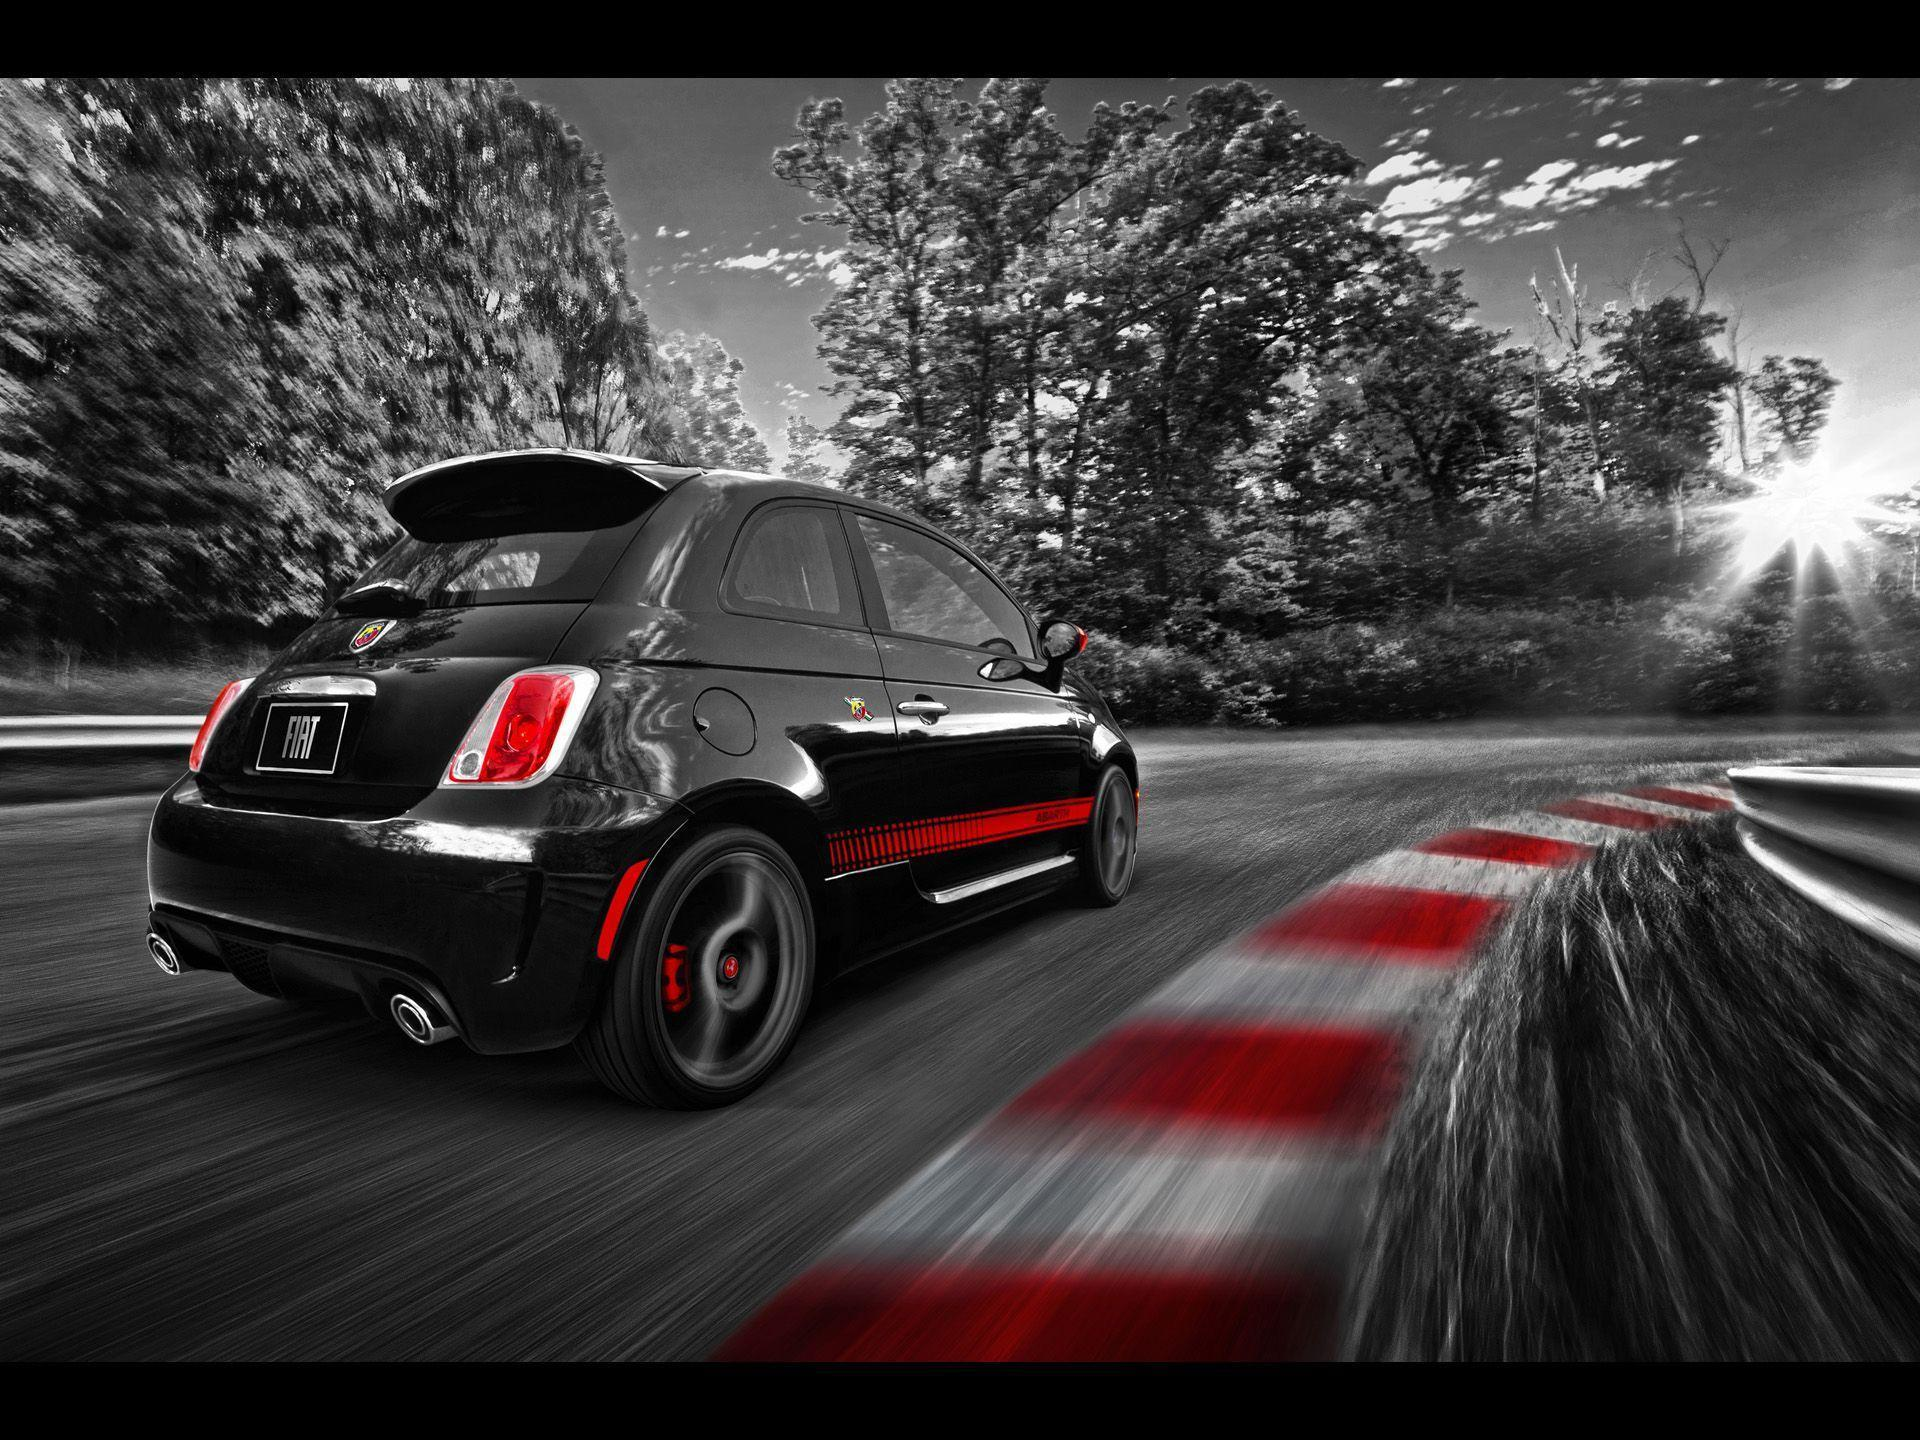 Fiat 500 Wallpapers (29+)